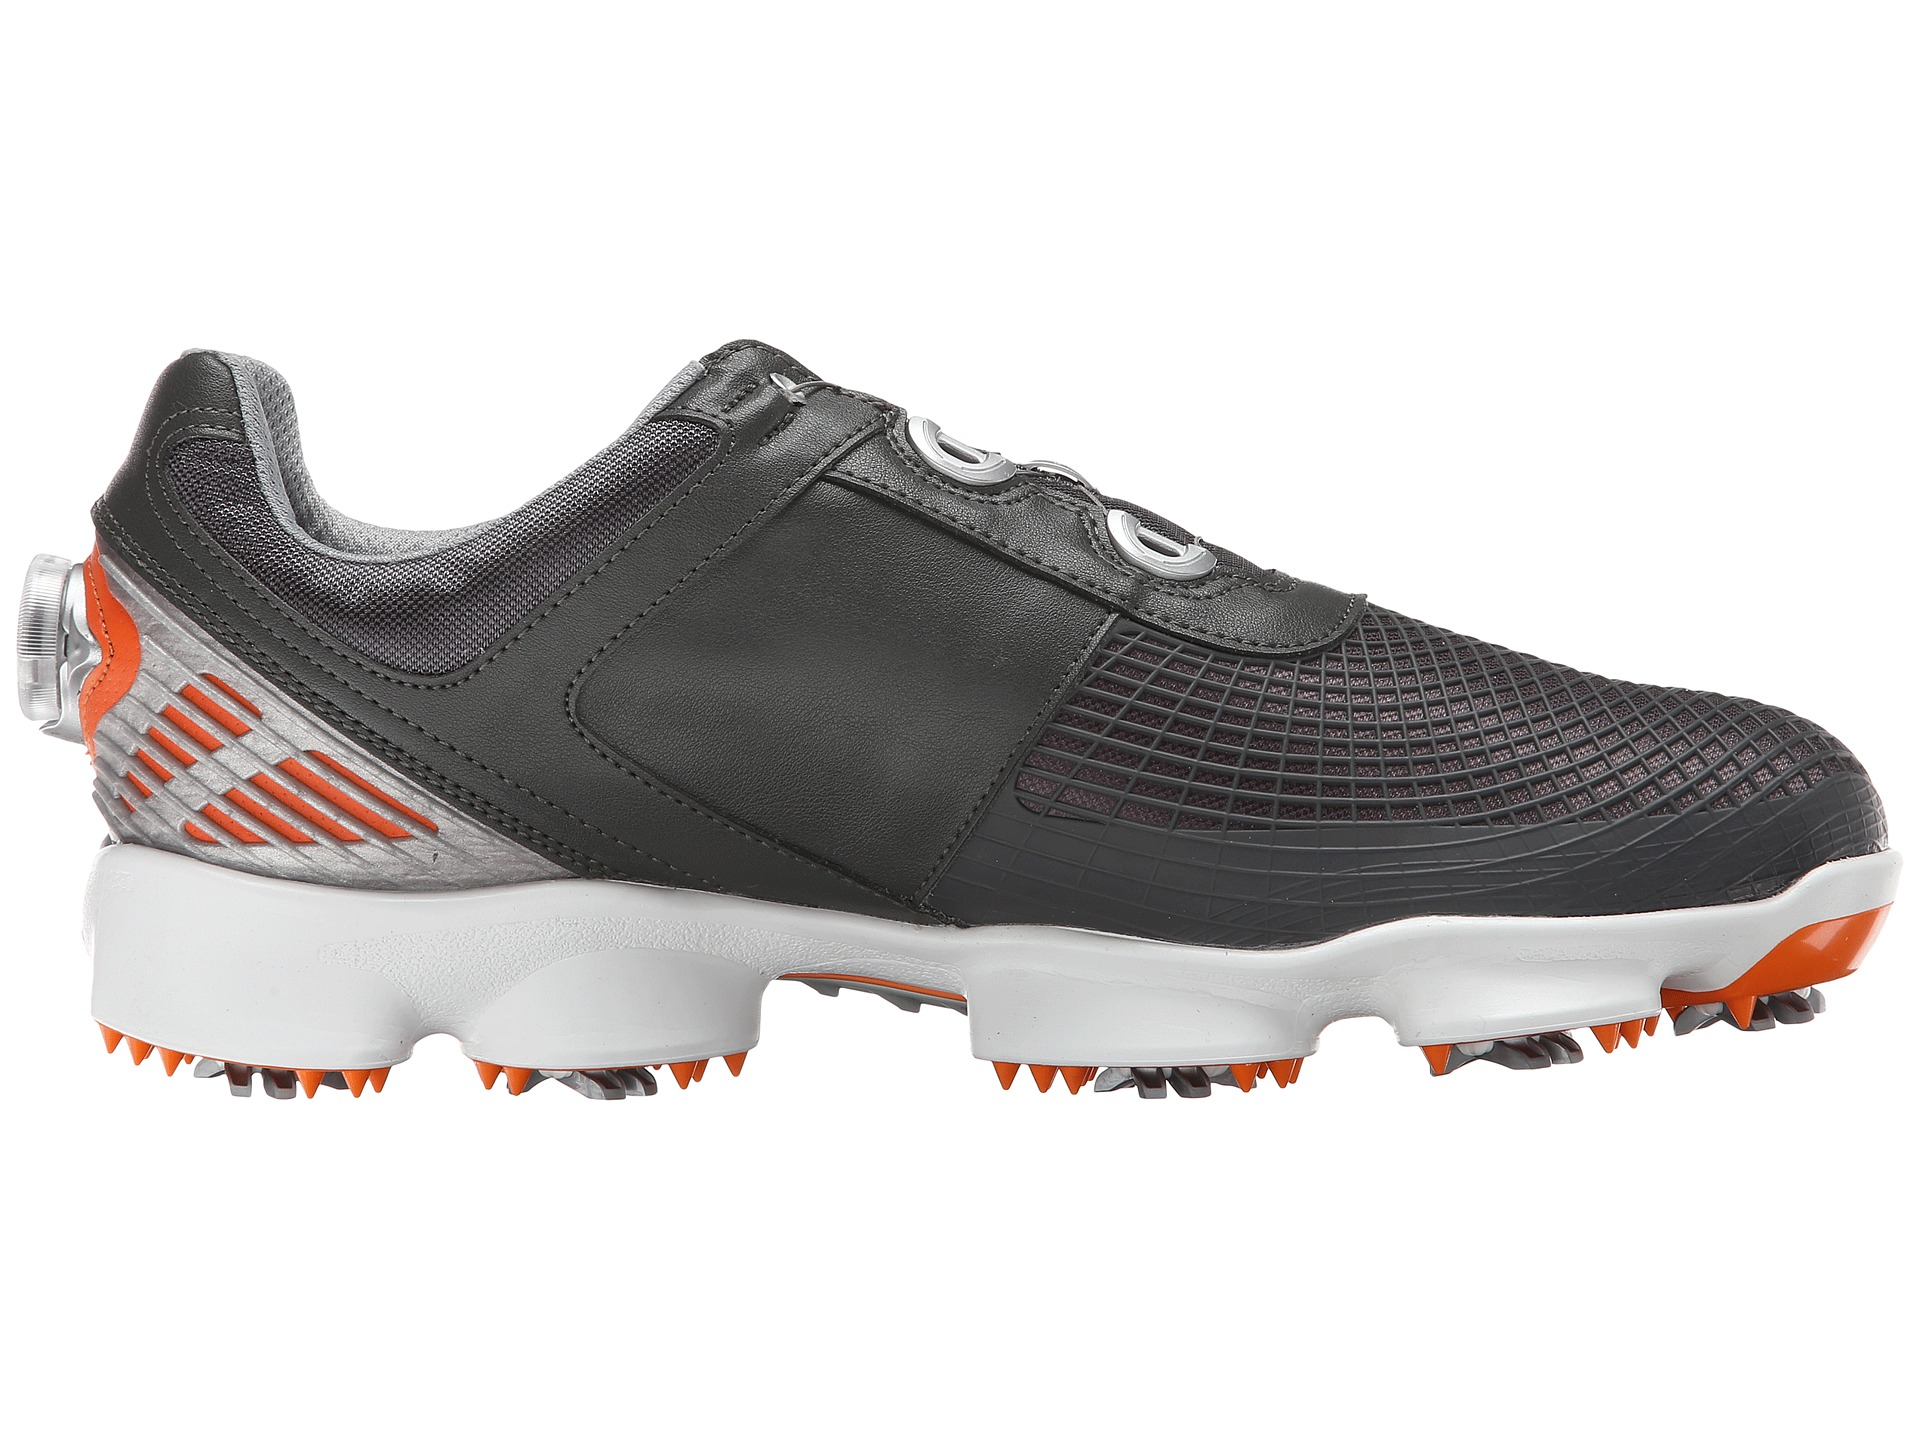 Zappos Footjoy Golf Shoes